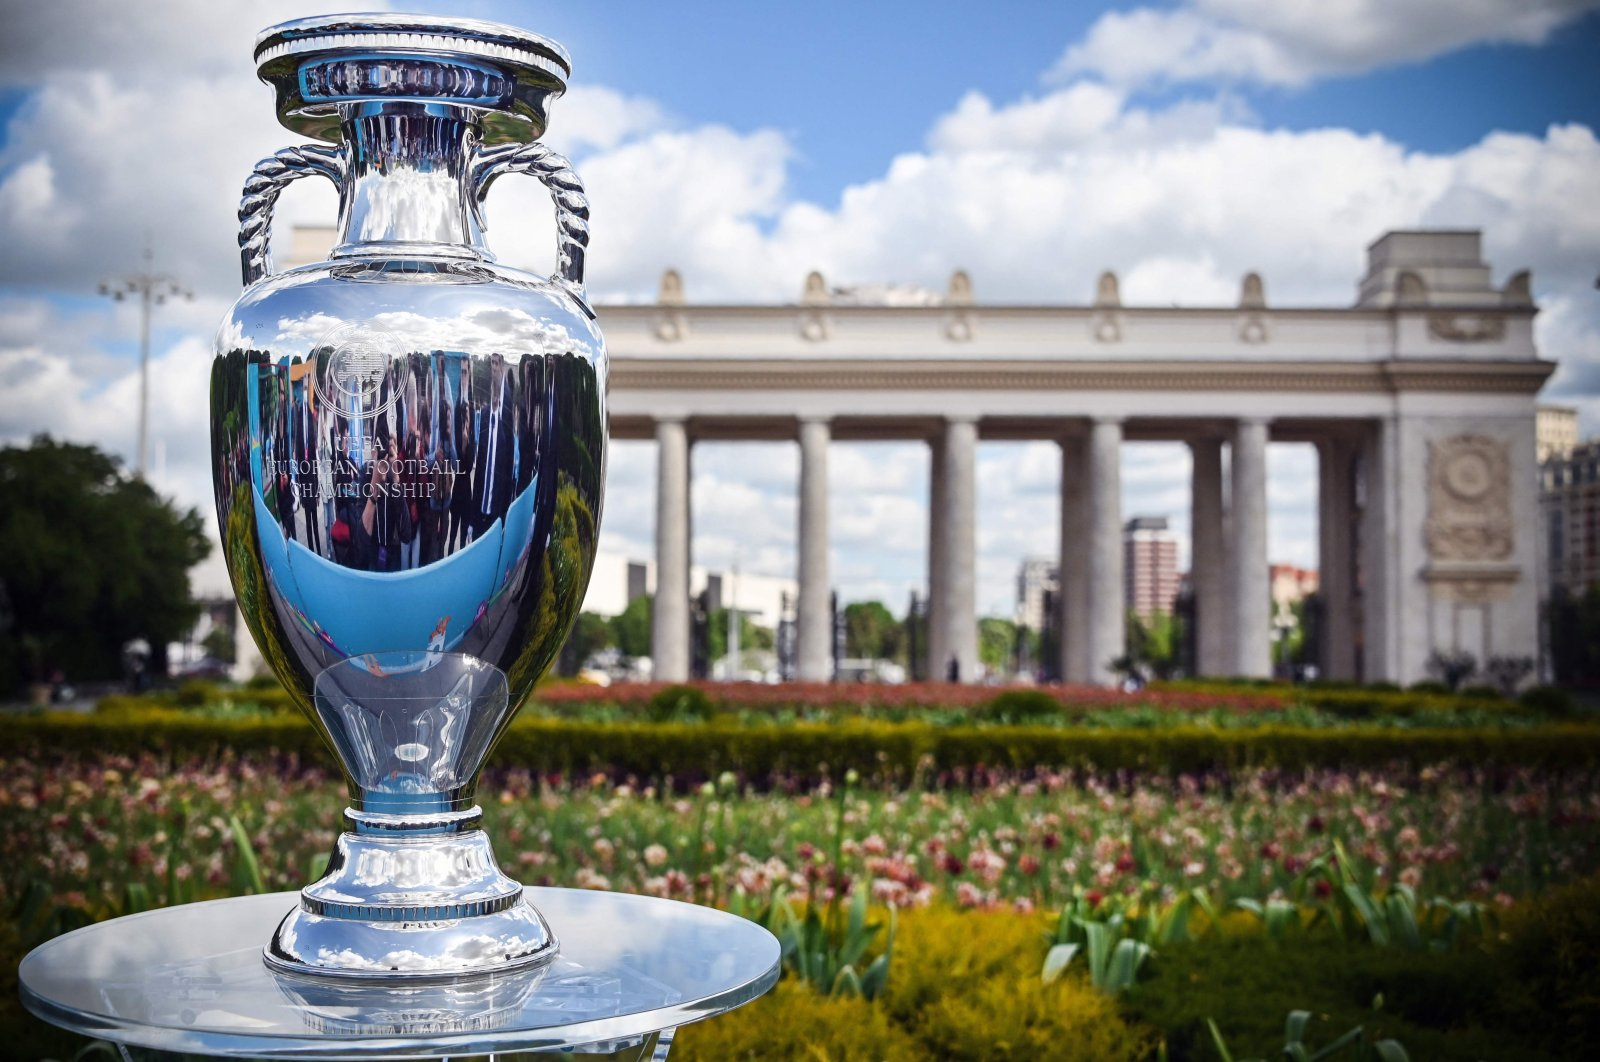 The UEFA European Football Championship trophy pictured at the Gorky Park in Moscow, Russia, May 24, 2021. (AFP Photo)